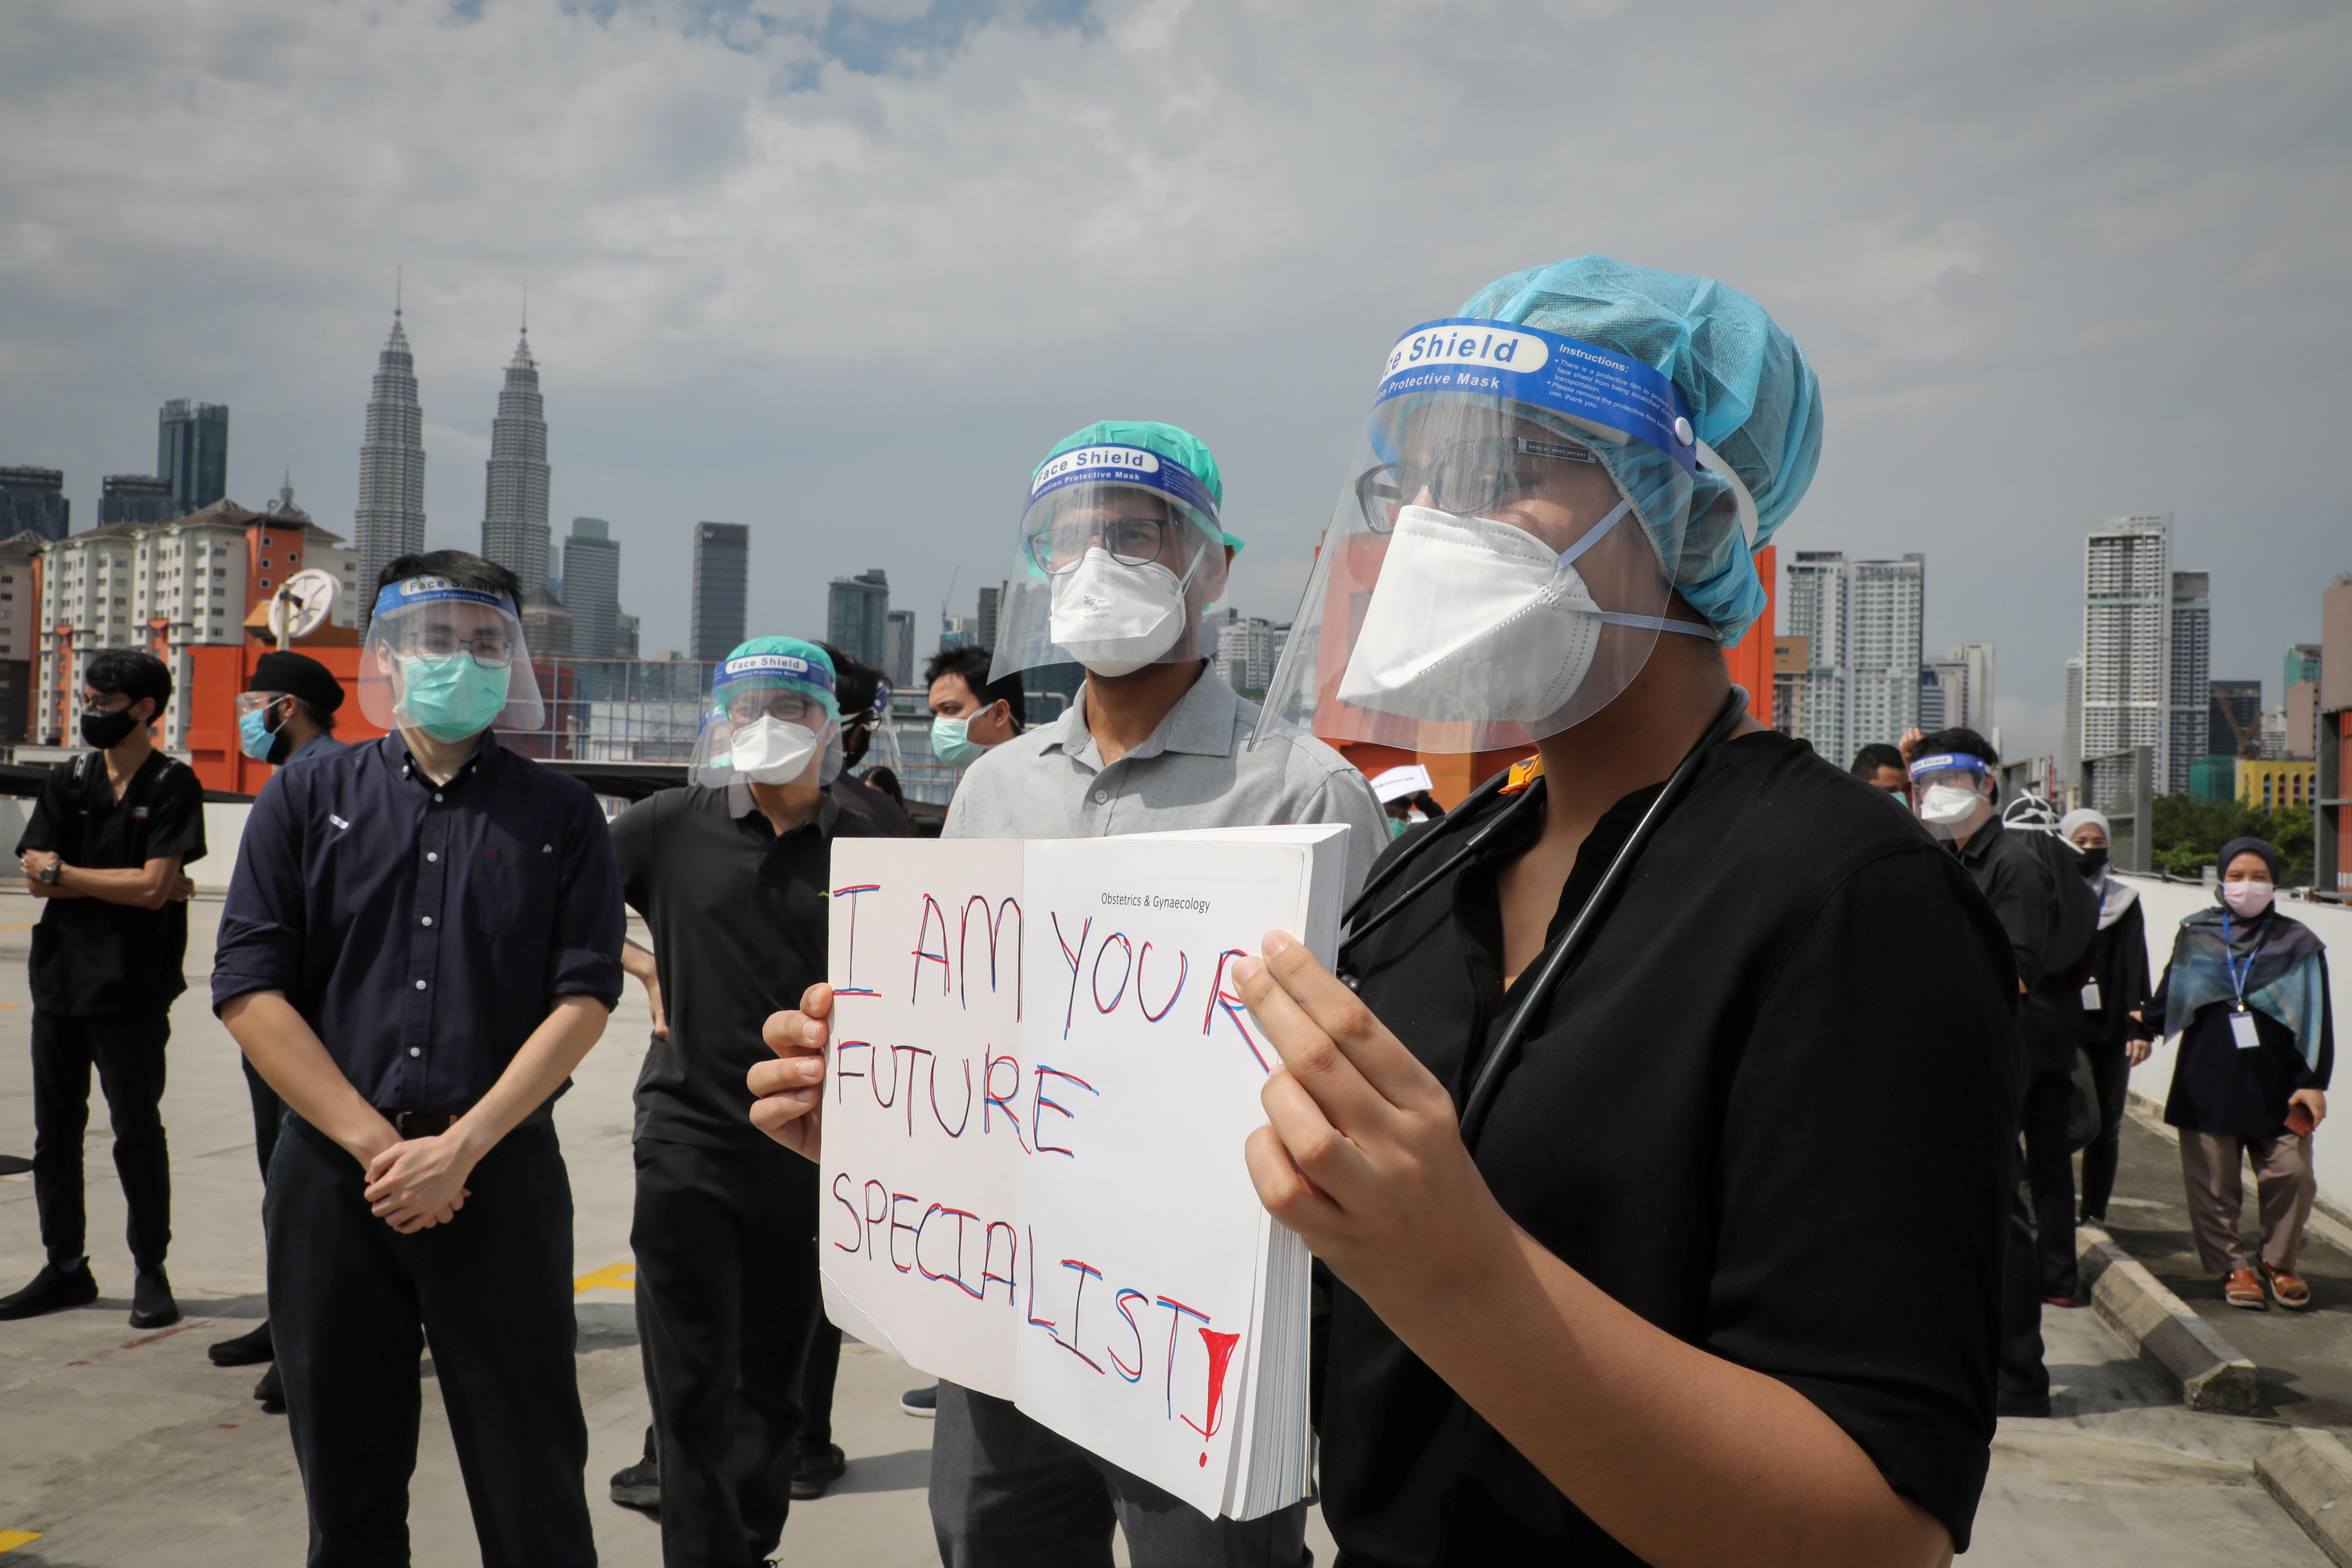 Government medical contract doctors participate in a walkout strike at Kuala Lumpur Hospital amid the coronavirus disease (COVID-19) outbreak in Kuala Lumpur, Malaysia July 26, 2021. REUTERS/Lim Huey Teng